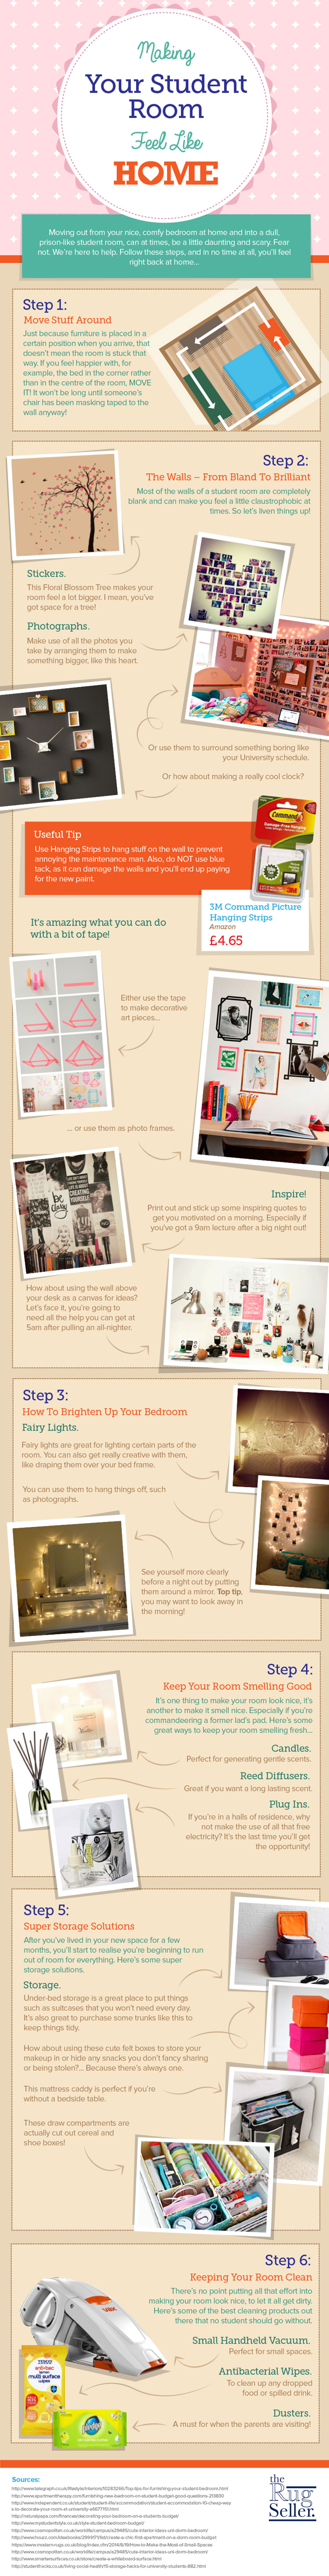 22 Great Tips to Make your Student Room a Home Infographic